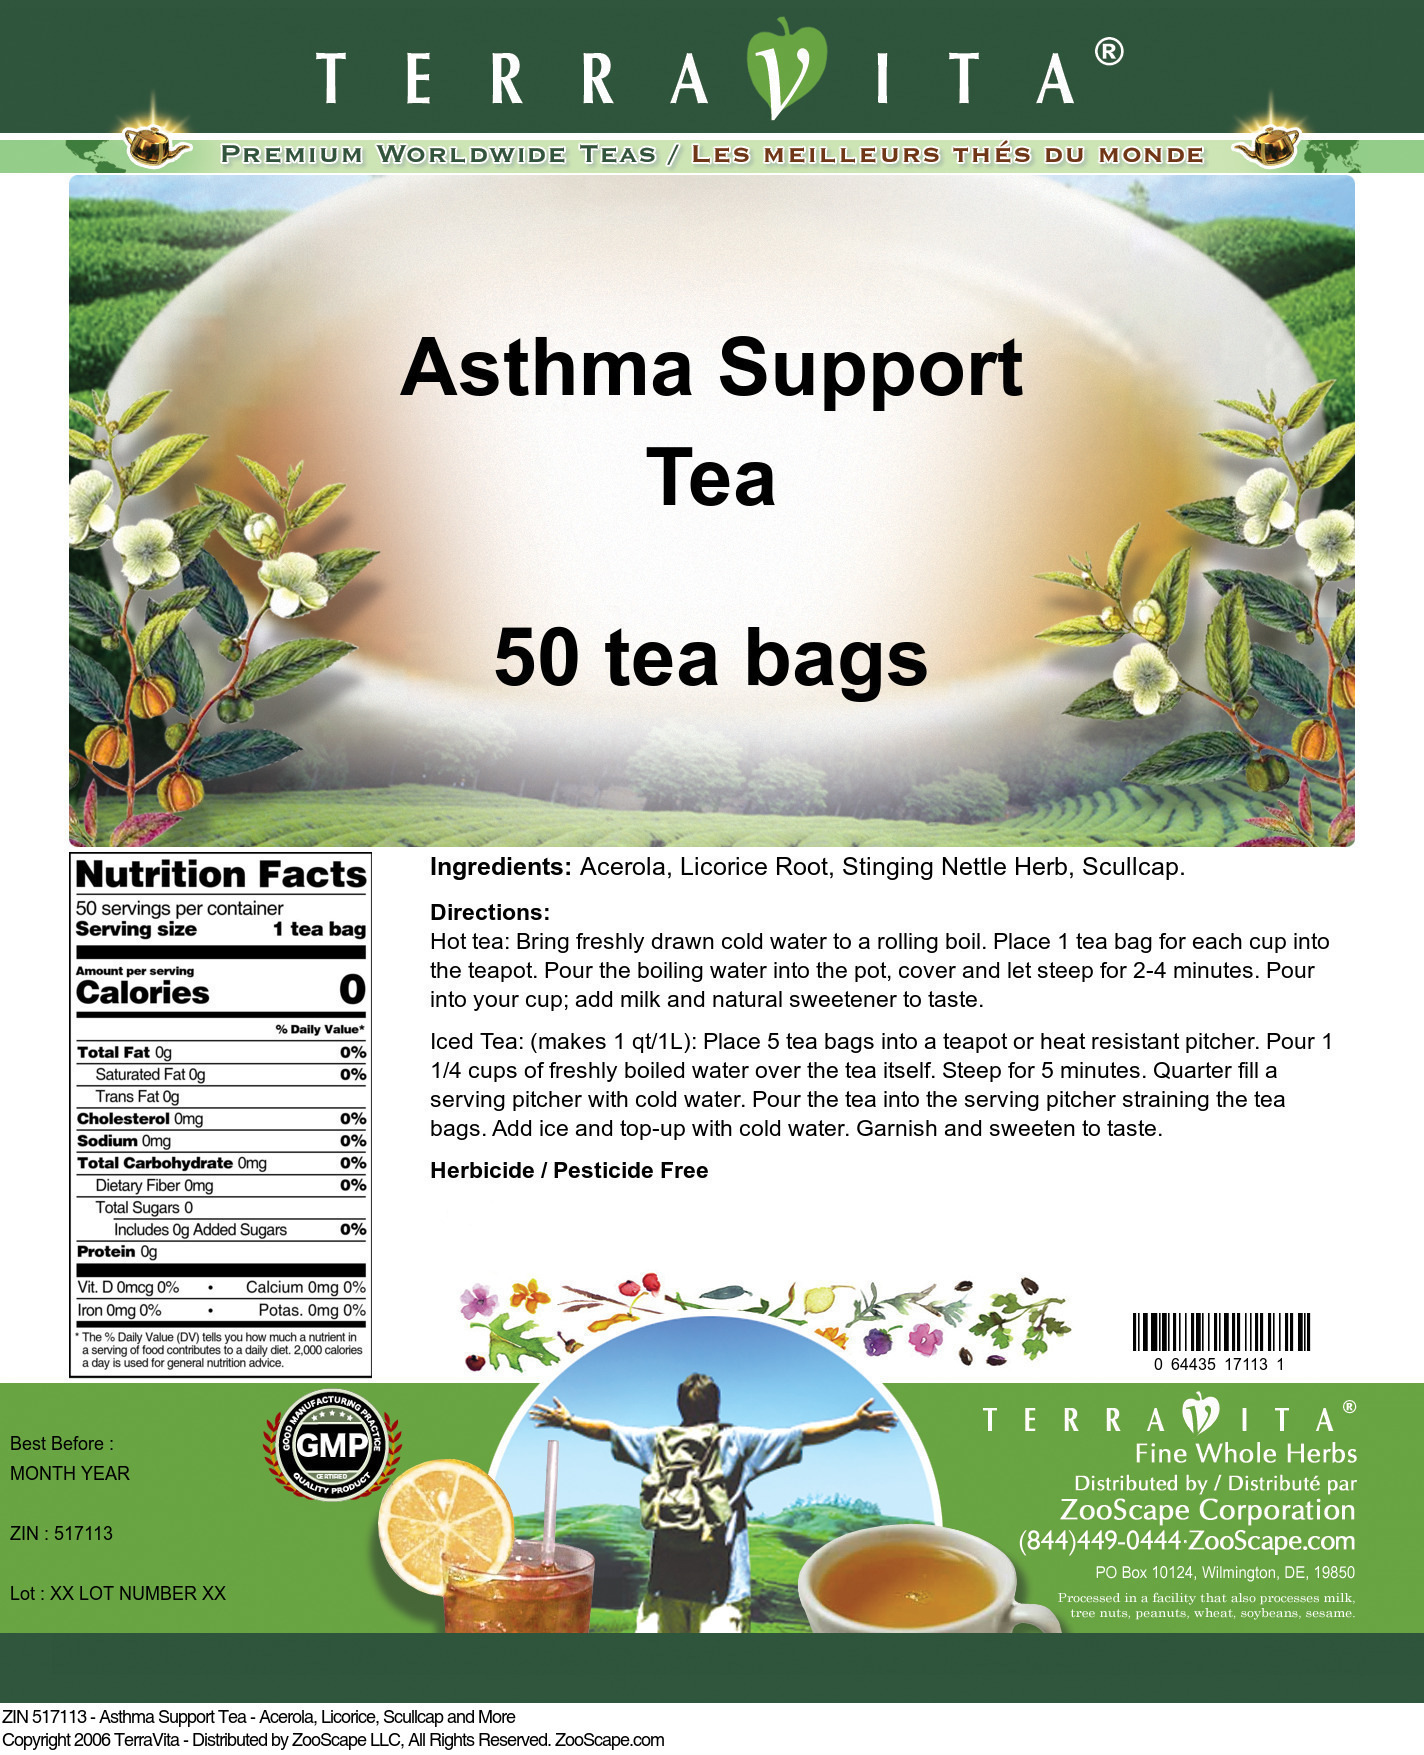 Asthma Support Tea - Acerola, Licorice, Scullcap and More